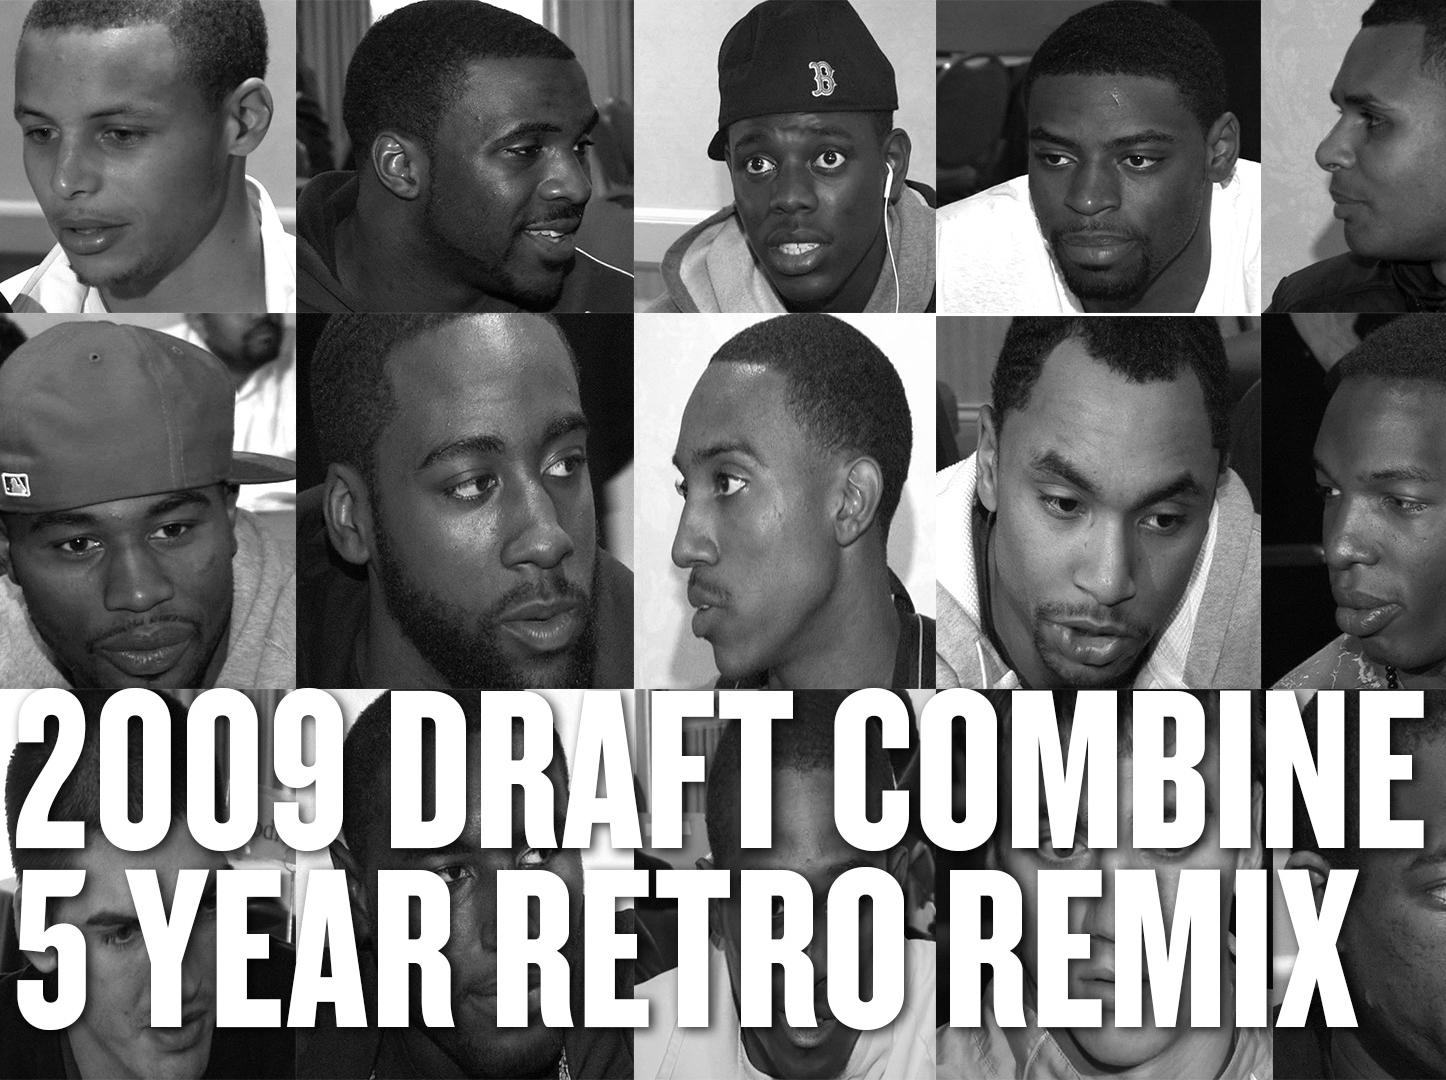 2009 NBA Draft Combine - Five Year Retro Remix